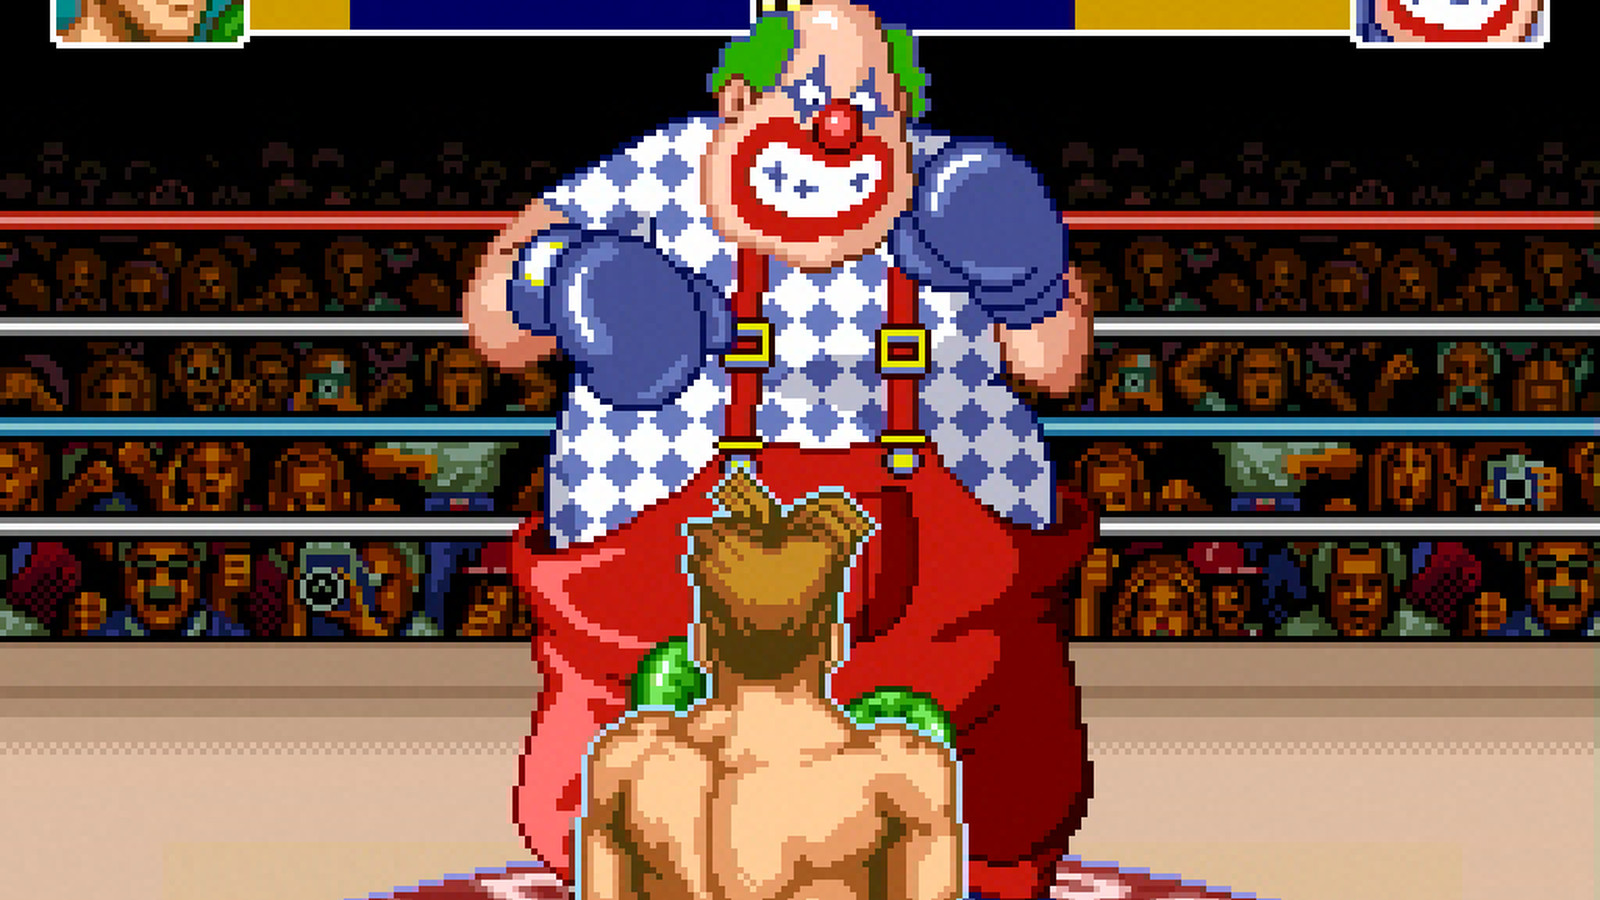 Mike Tyson Punch Out Wii : Super punch out joins the ds virtual console s snes